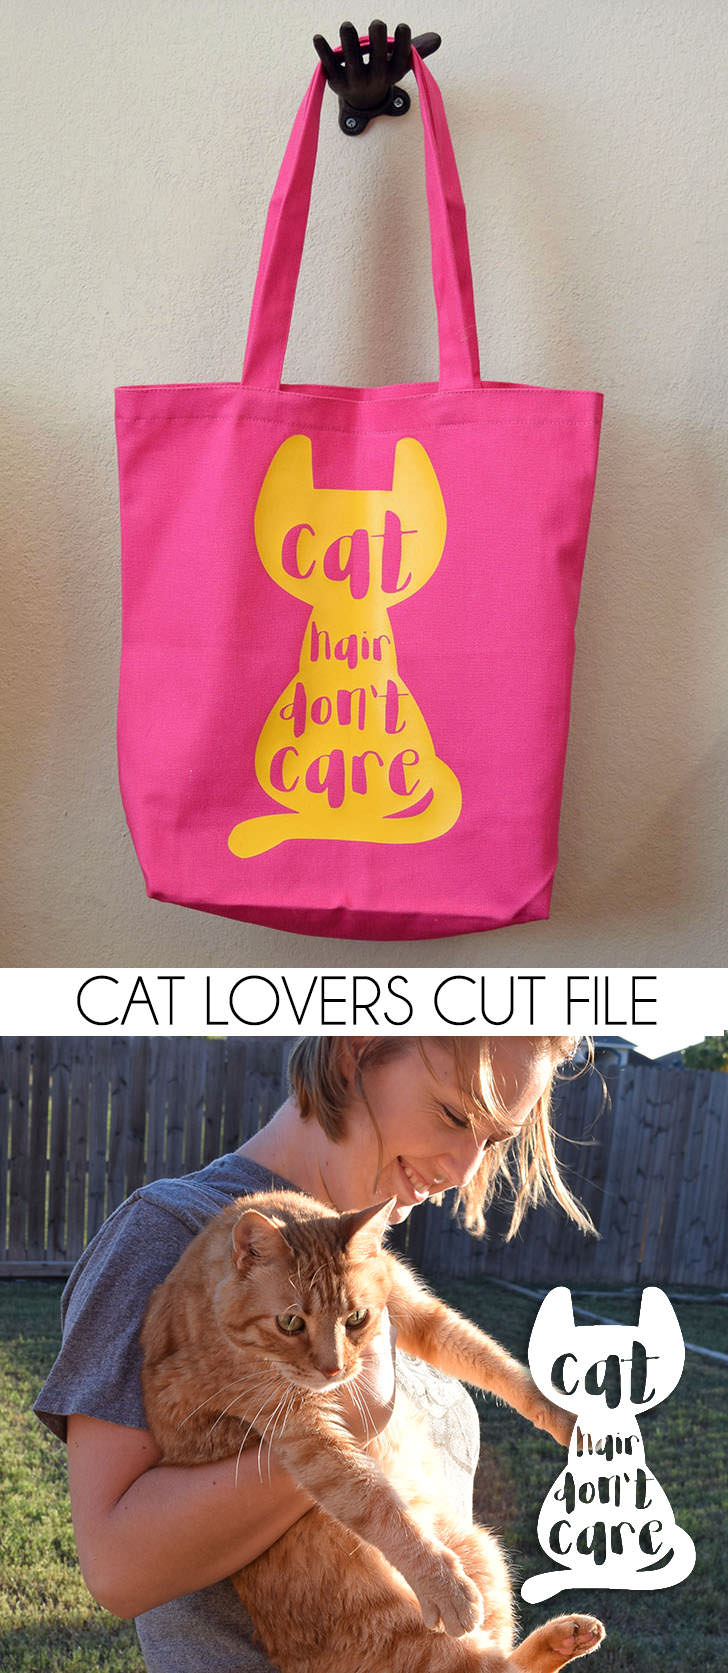 The perfect gift for a cat lover - cat hair don't care! SO cute!